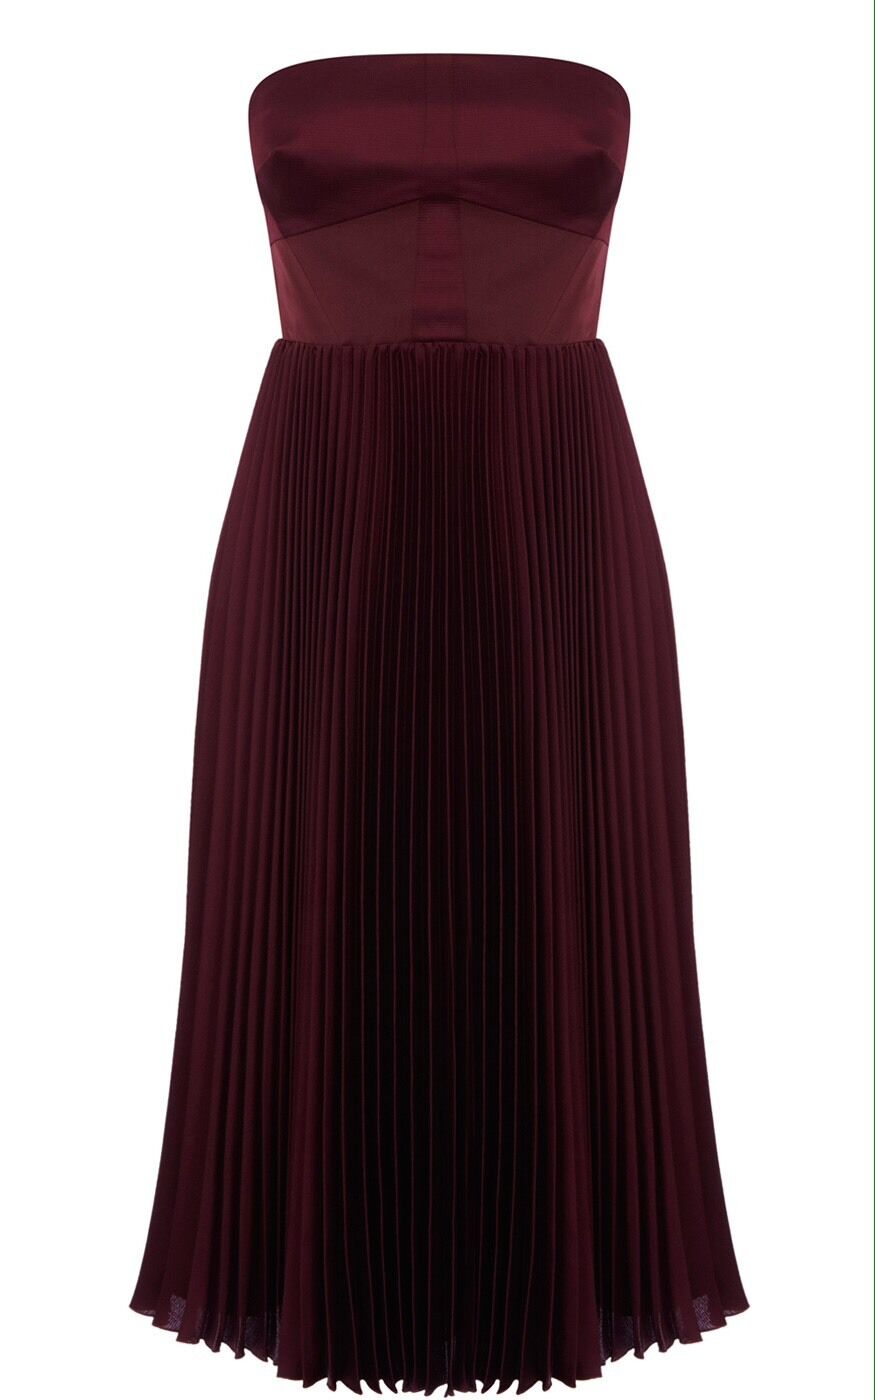 EXQUISITE Karen Millen Aubergine Pleated Dress NEW WITH TAGS RRP